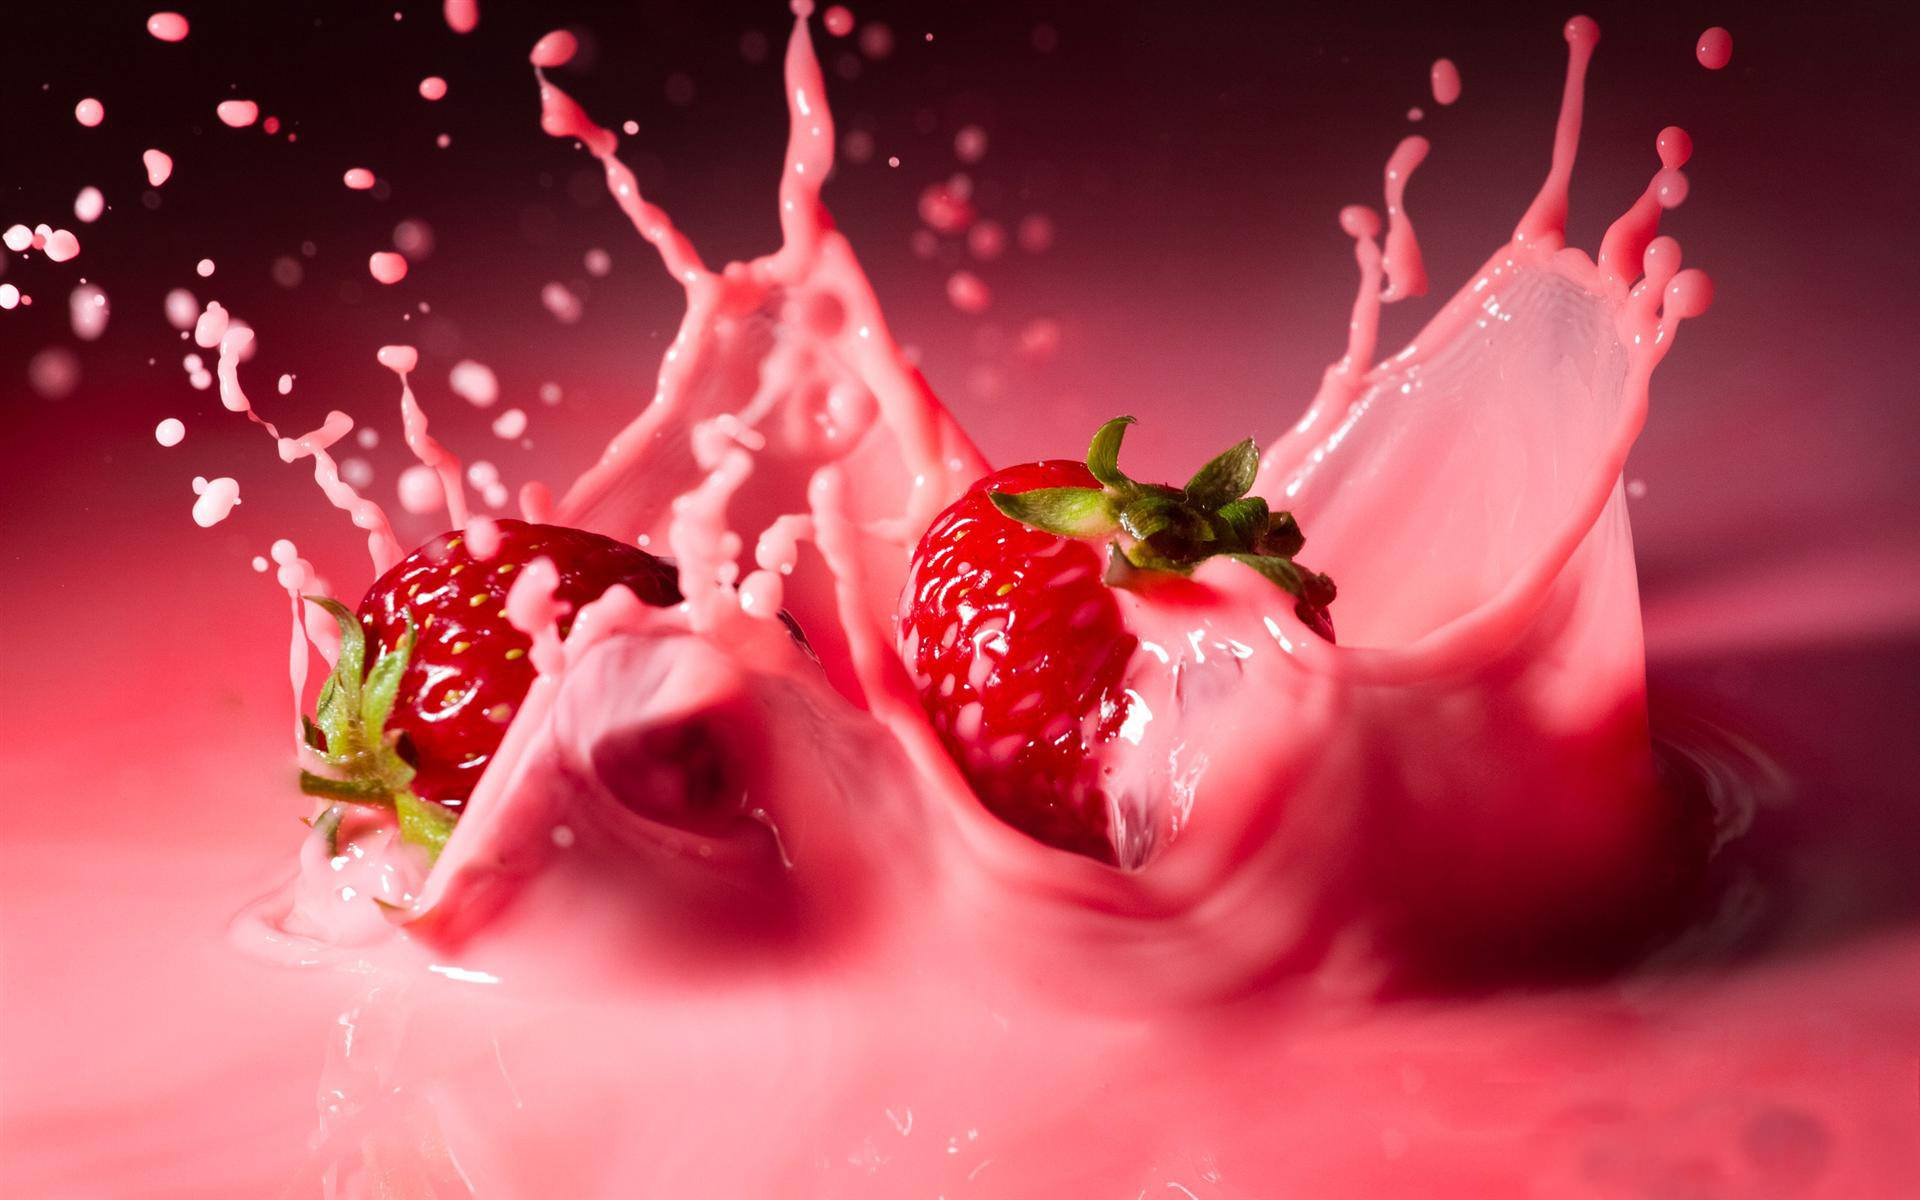 Strawberry Shake Wallpaper